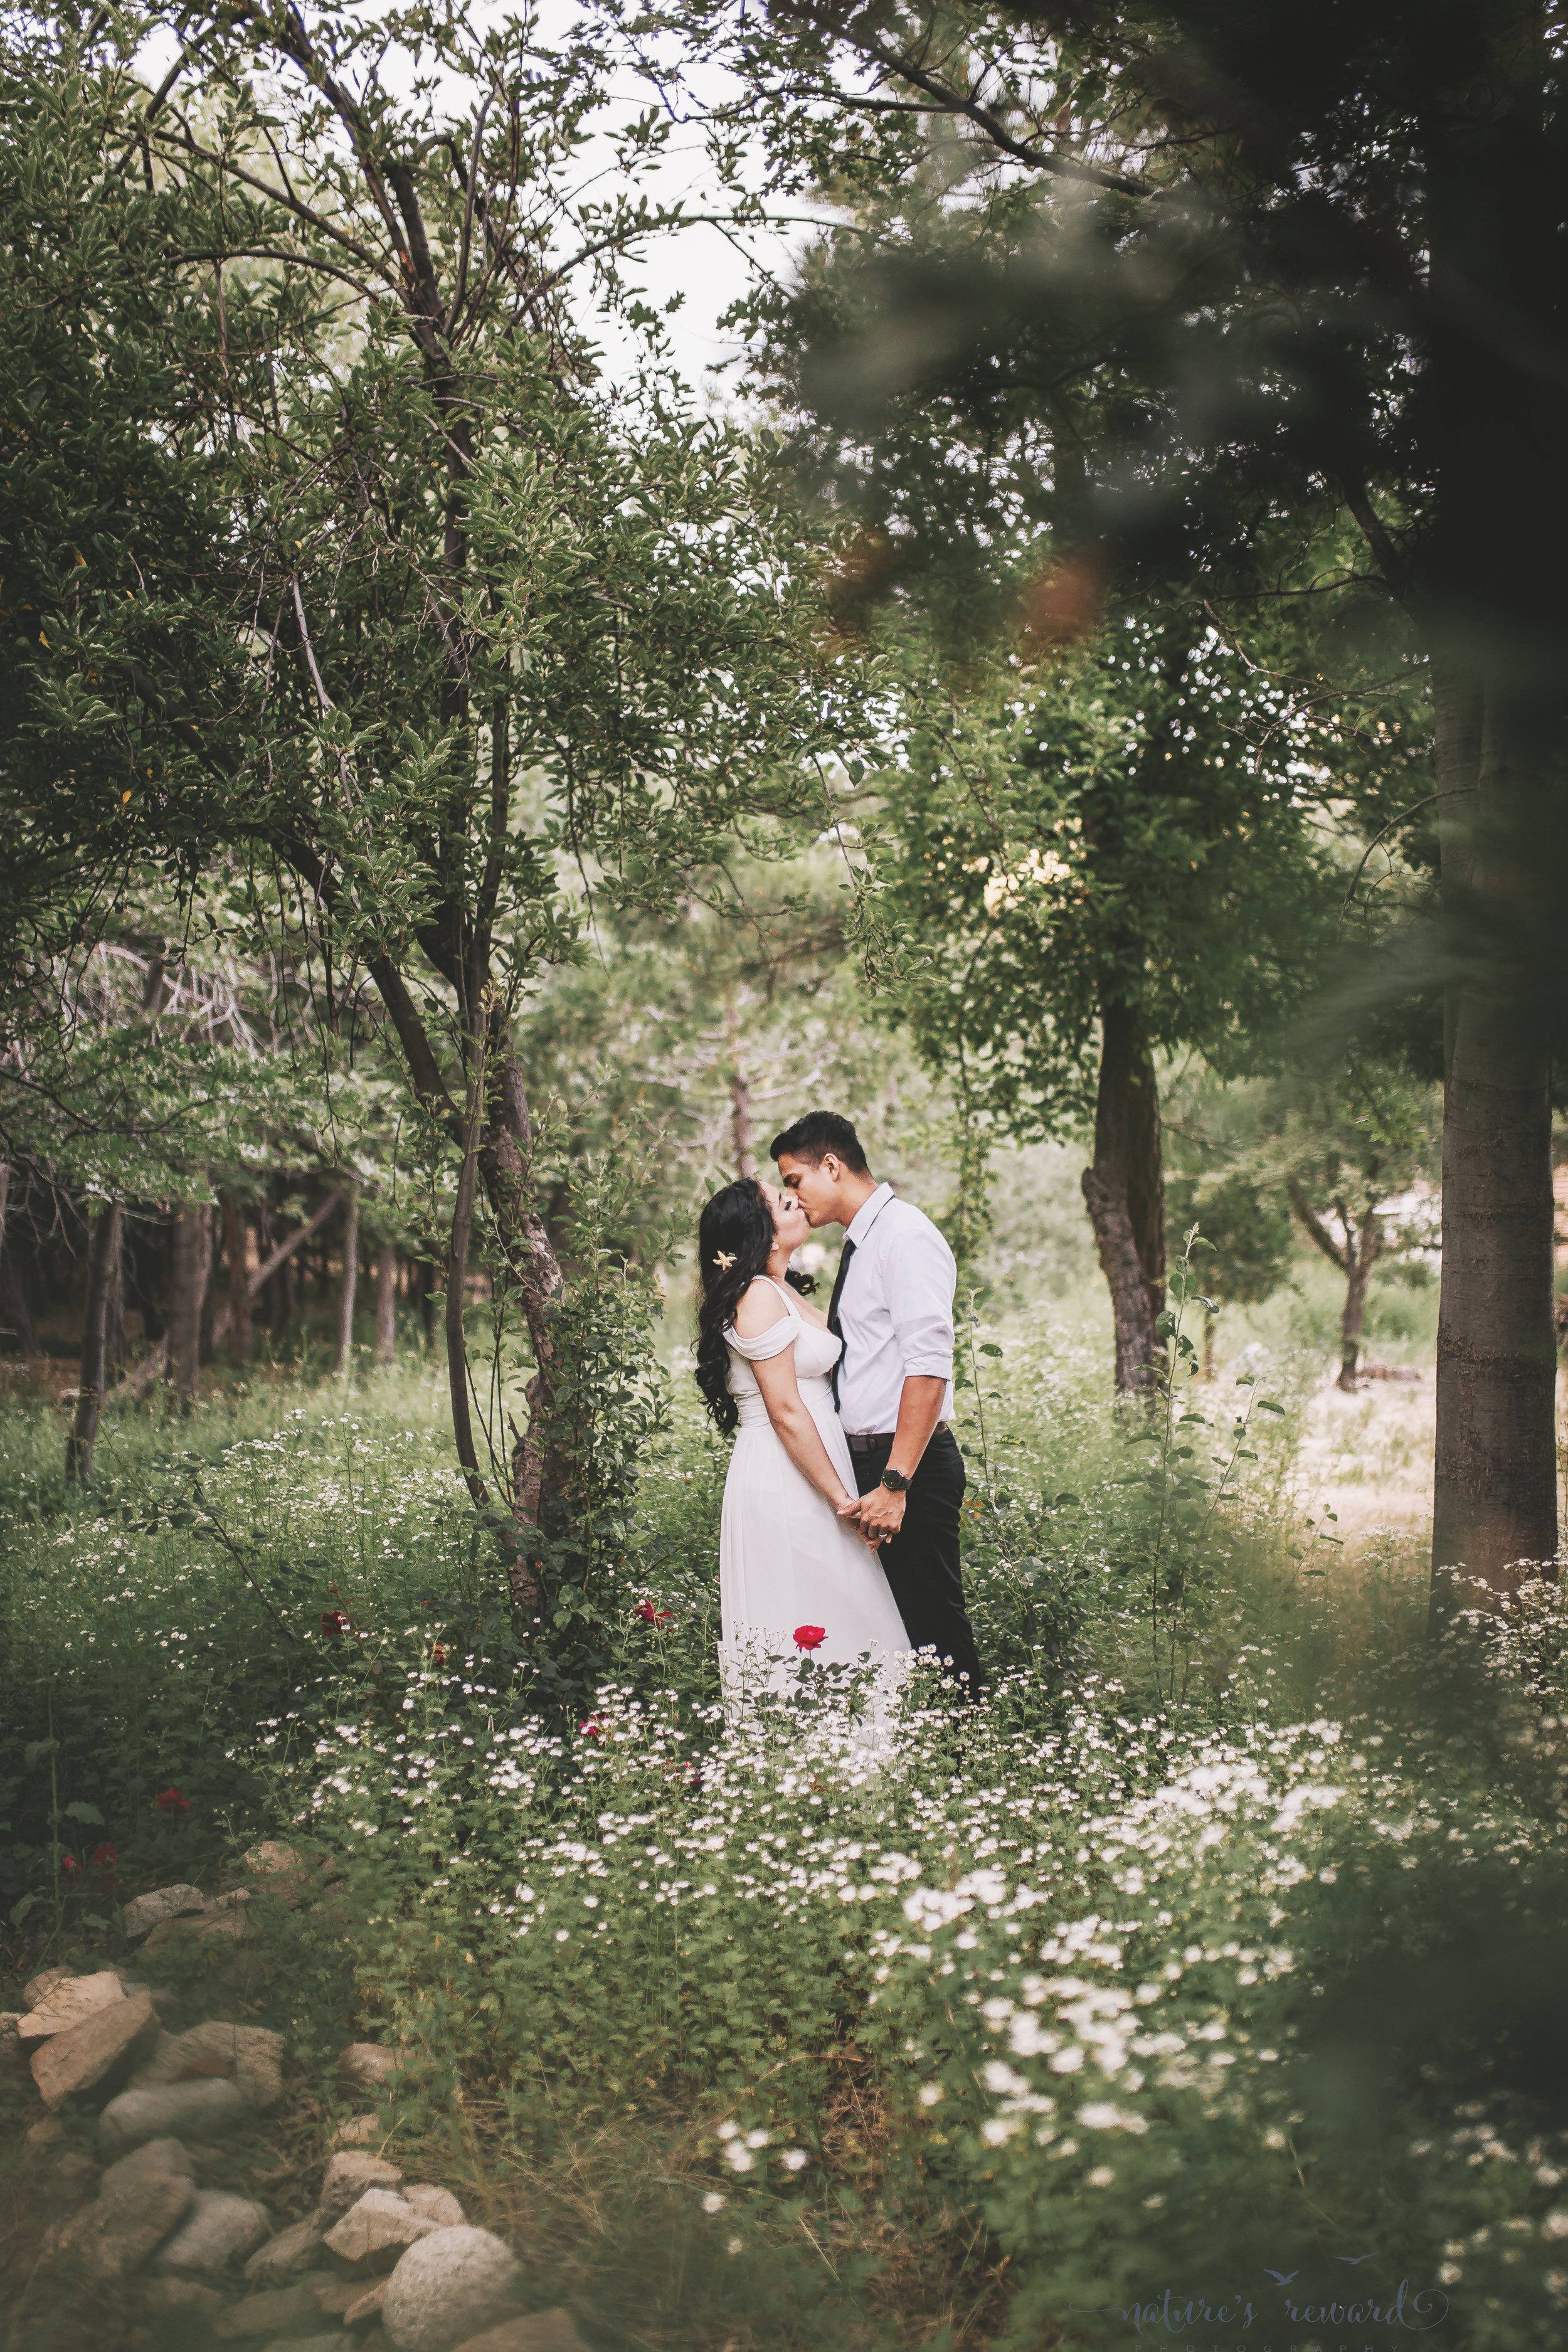 Once in a lifetime shot, invited into the personal propter by a bystander, this bride and groom kiss lovingly in this portrait by Nature's Reward Photography